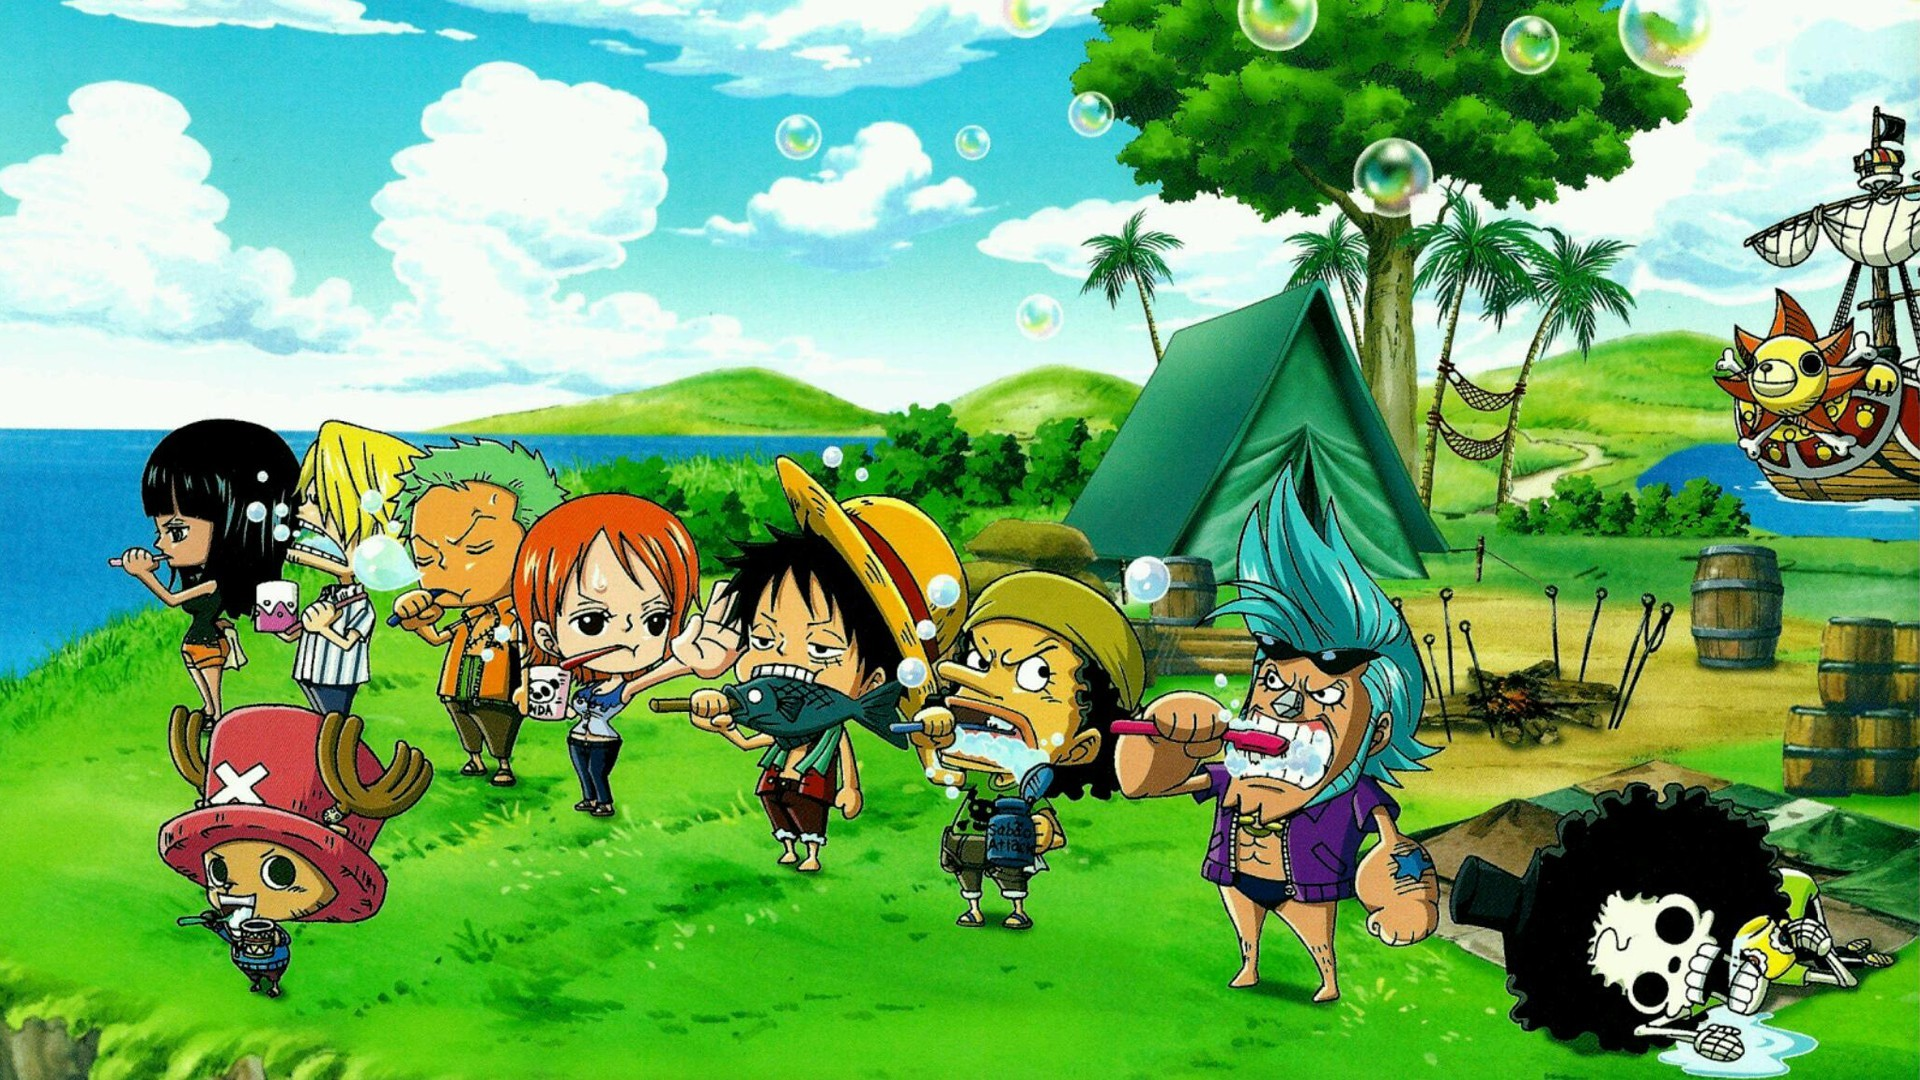 1920x1080 Anime  One Piece Nico Robin Roronoa Zoro Nami Monkey D. Luffy  Usopp Franky Brook